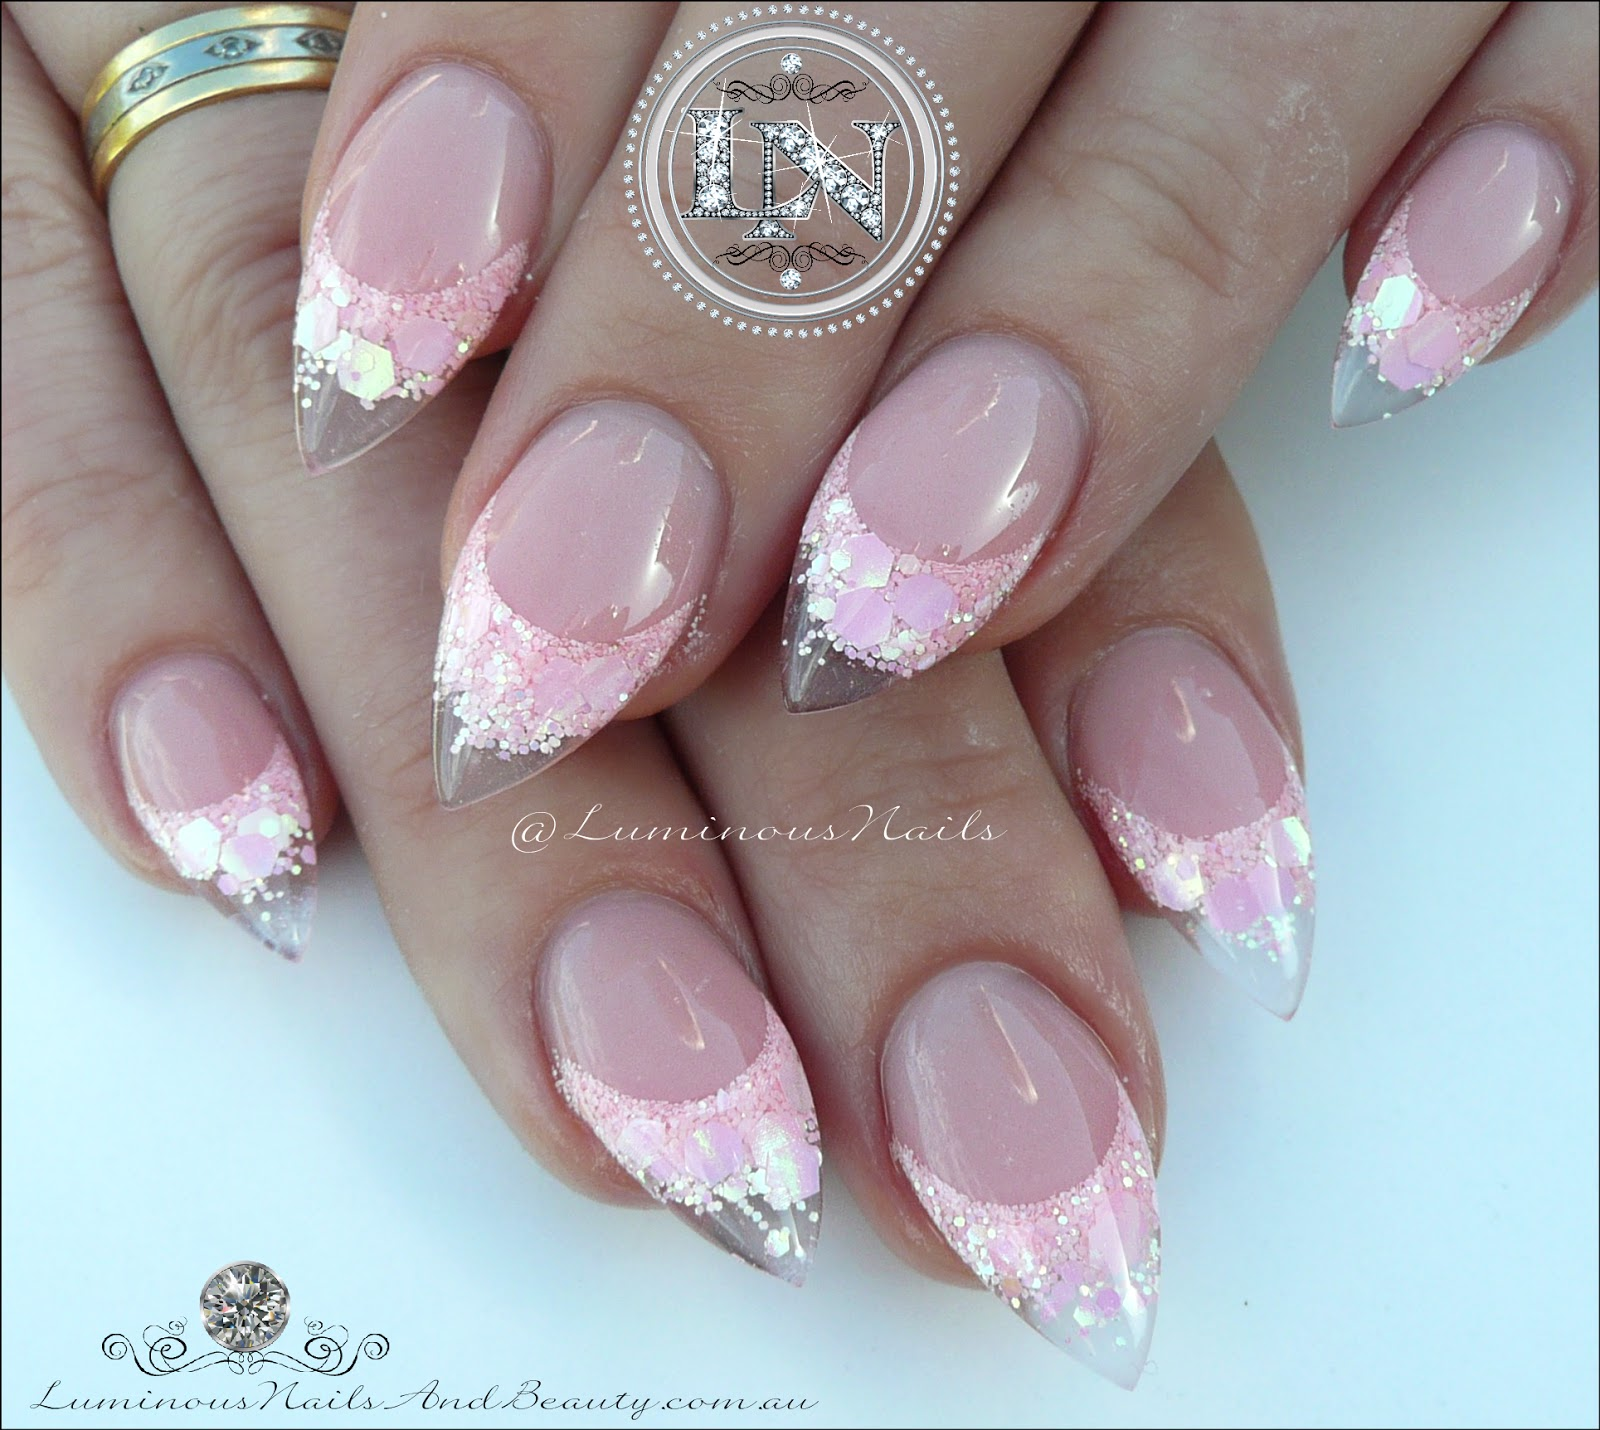 Luminous nails baby pink glittery sculptured acrylic nails prinsesfo Image collections